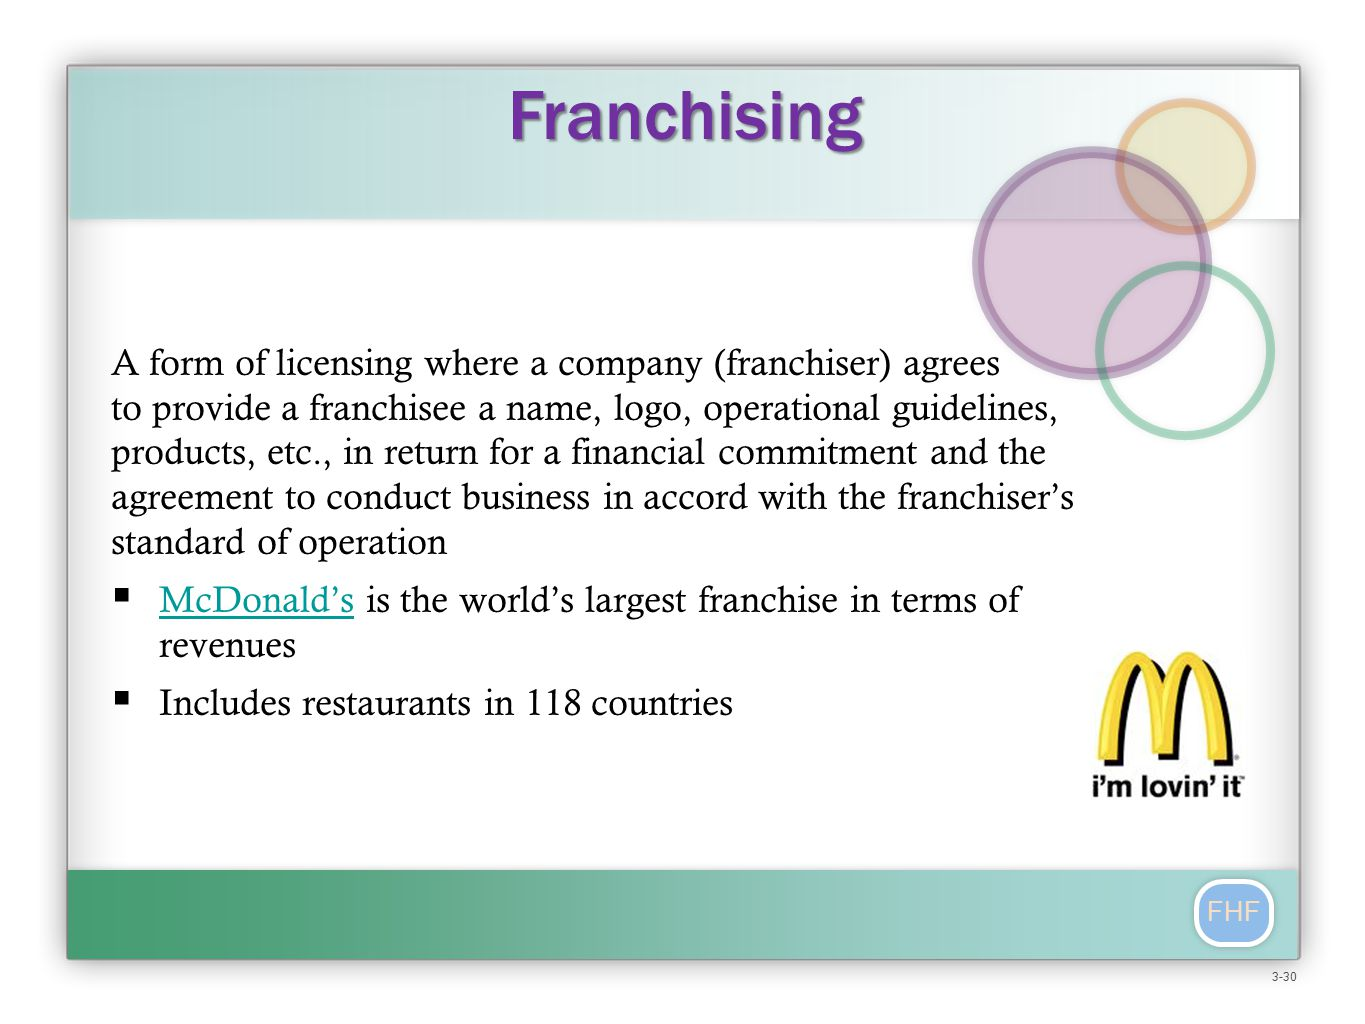 FHF A form of licensing where a company (franchiser) agrees to provide a franchisee a name, logo, operational guidelines, products, etc., in return for a financial commitment and the agreement to conduct business in accord with the franchiser's standard of operation  McDonald's is the world's largest franchise in terms of revenues McDonald's  Includes restaurants in 118 countries Franchising 3-30